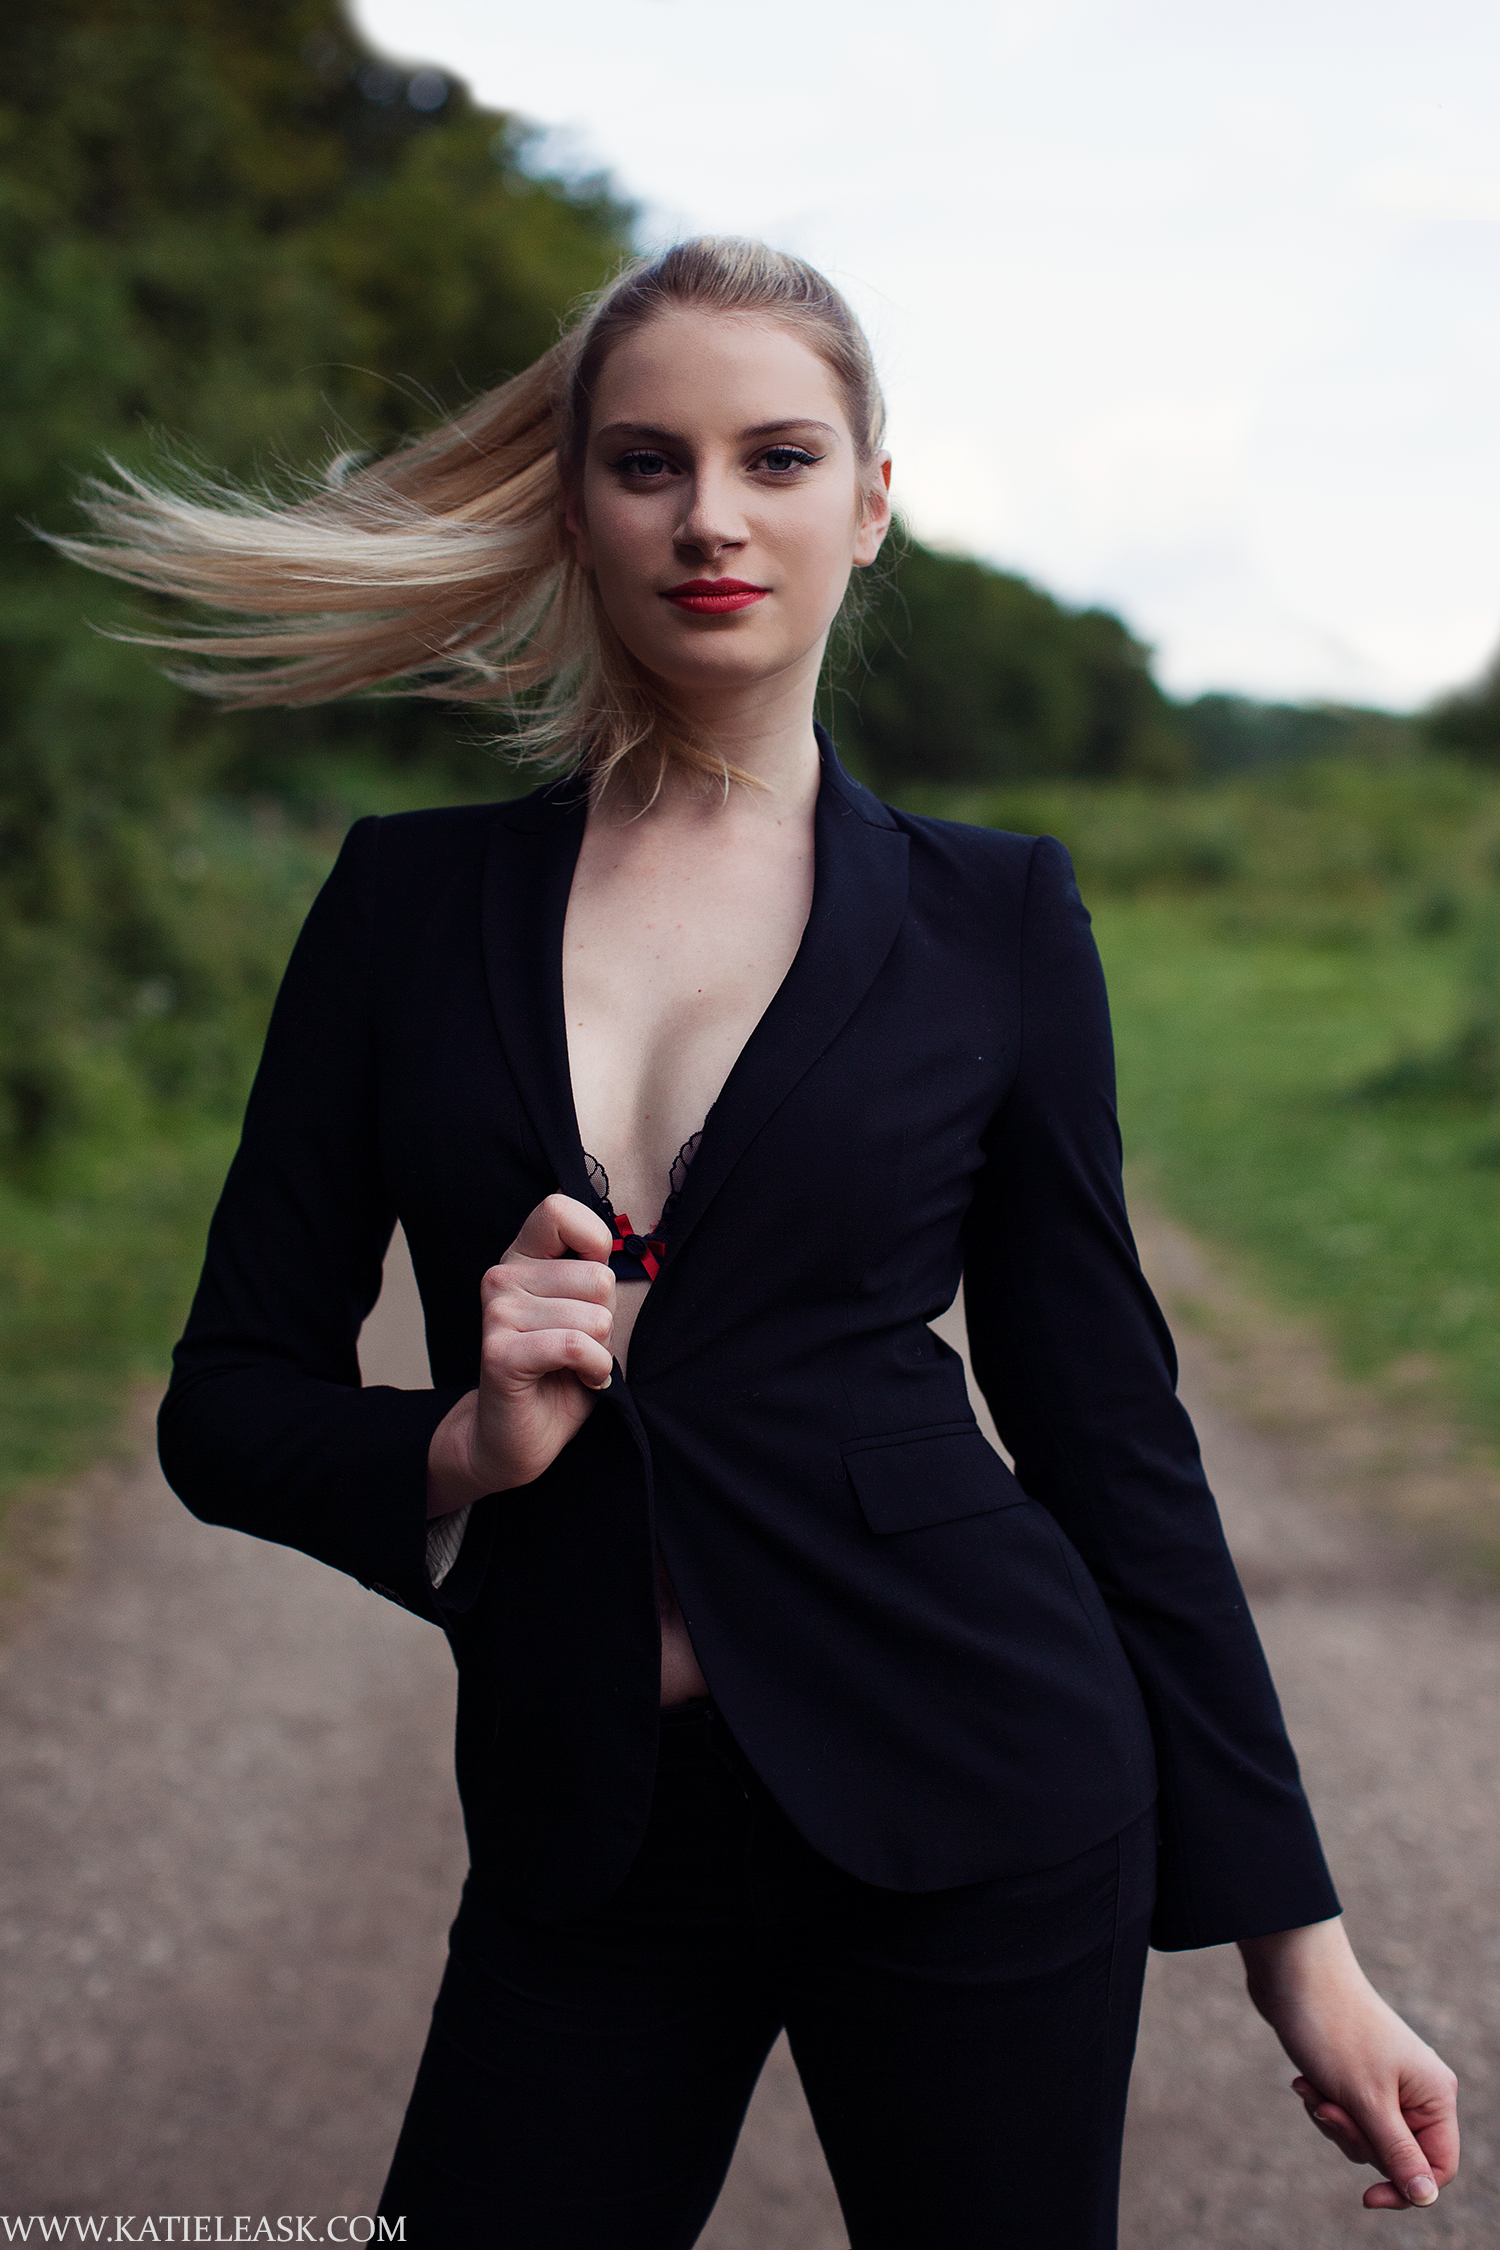 Katie-Leask-Photography-Laura-Nicholson-004W-